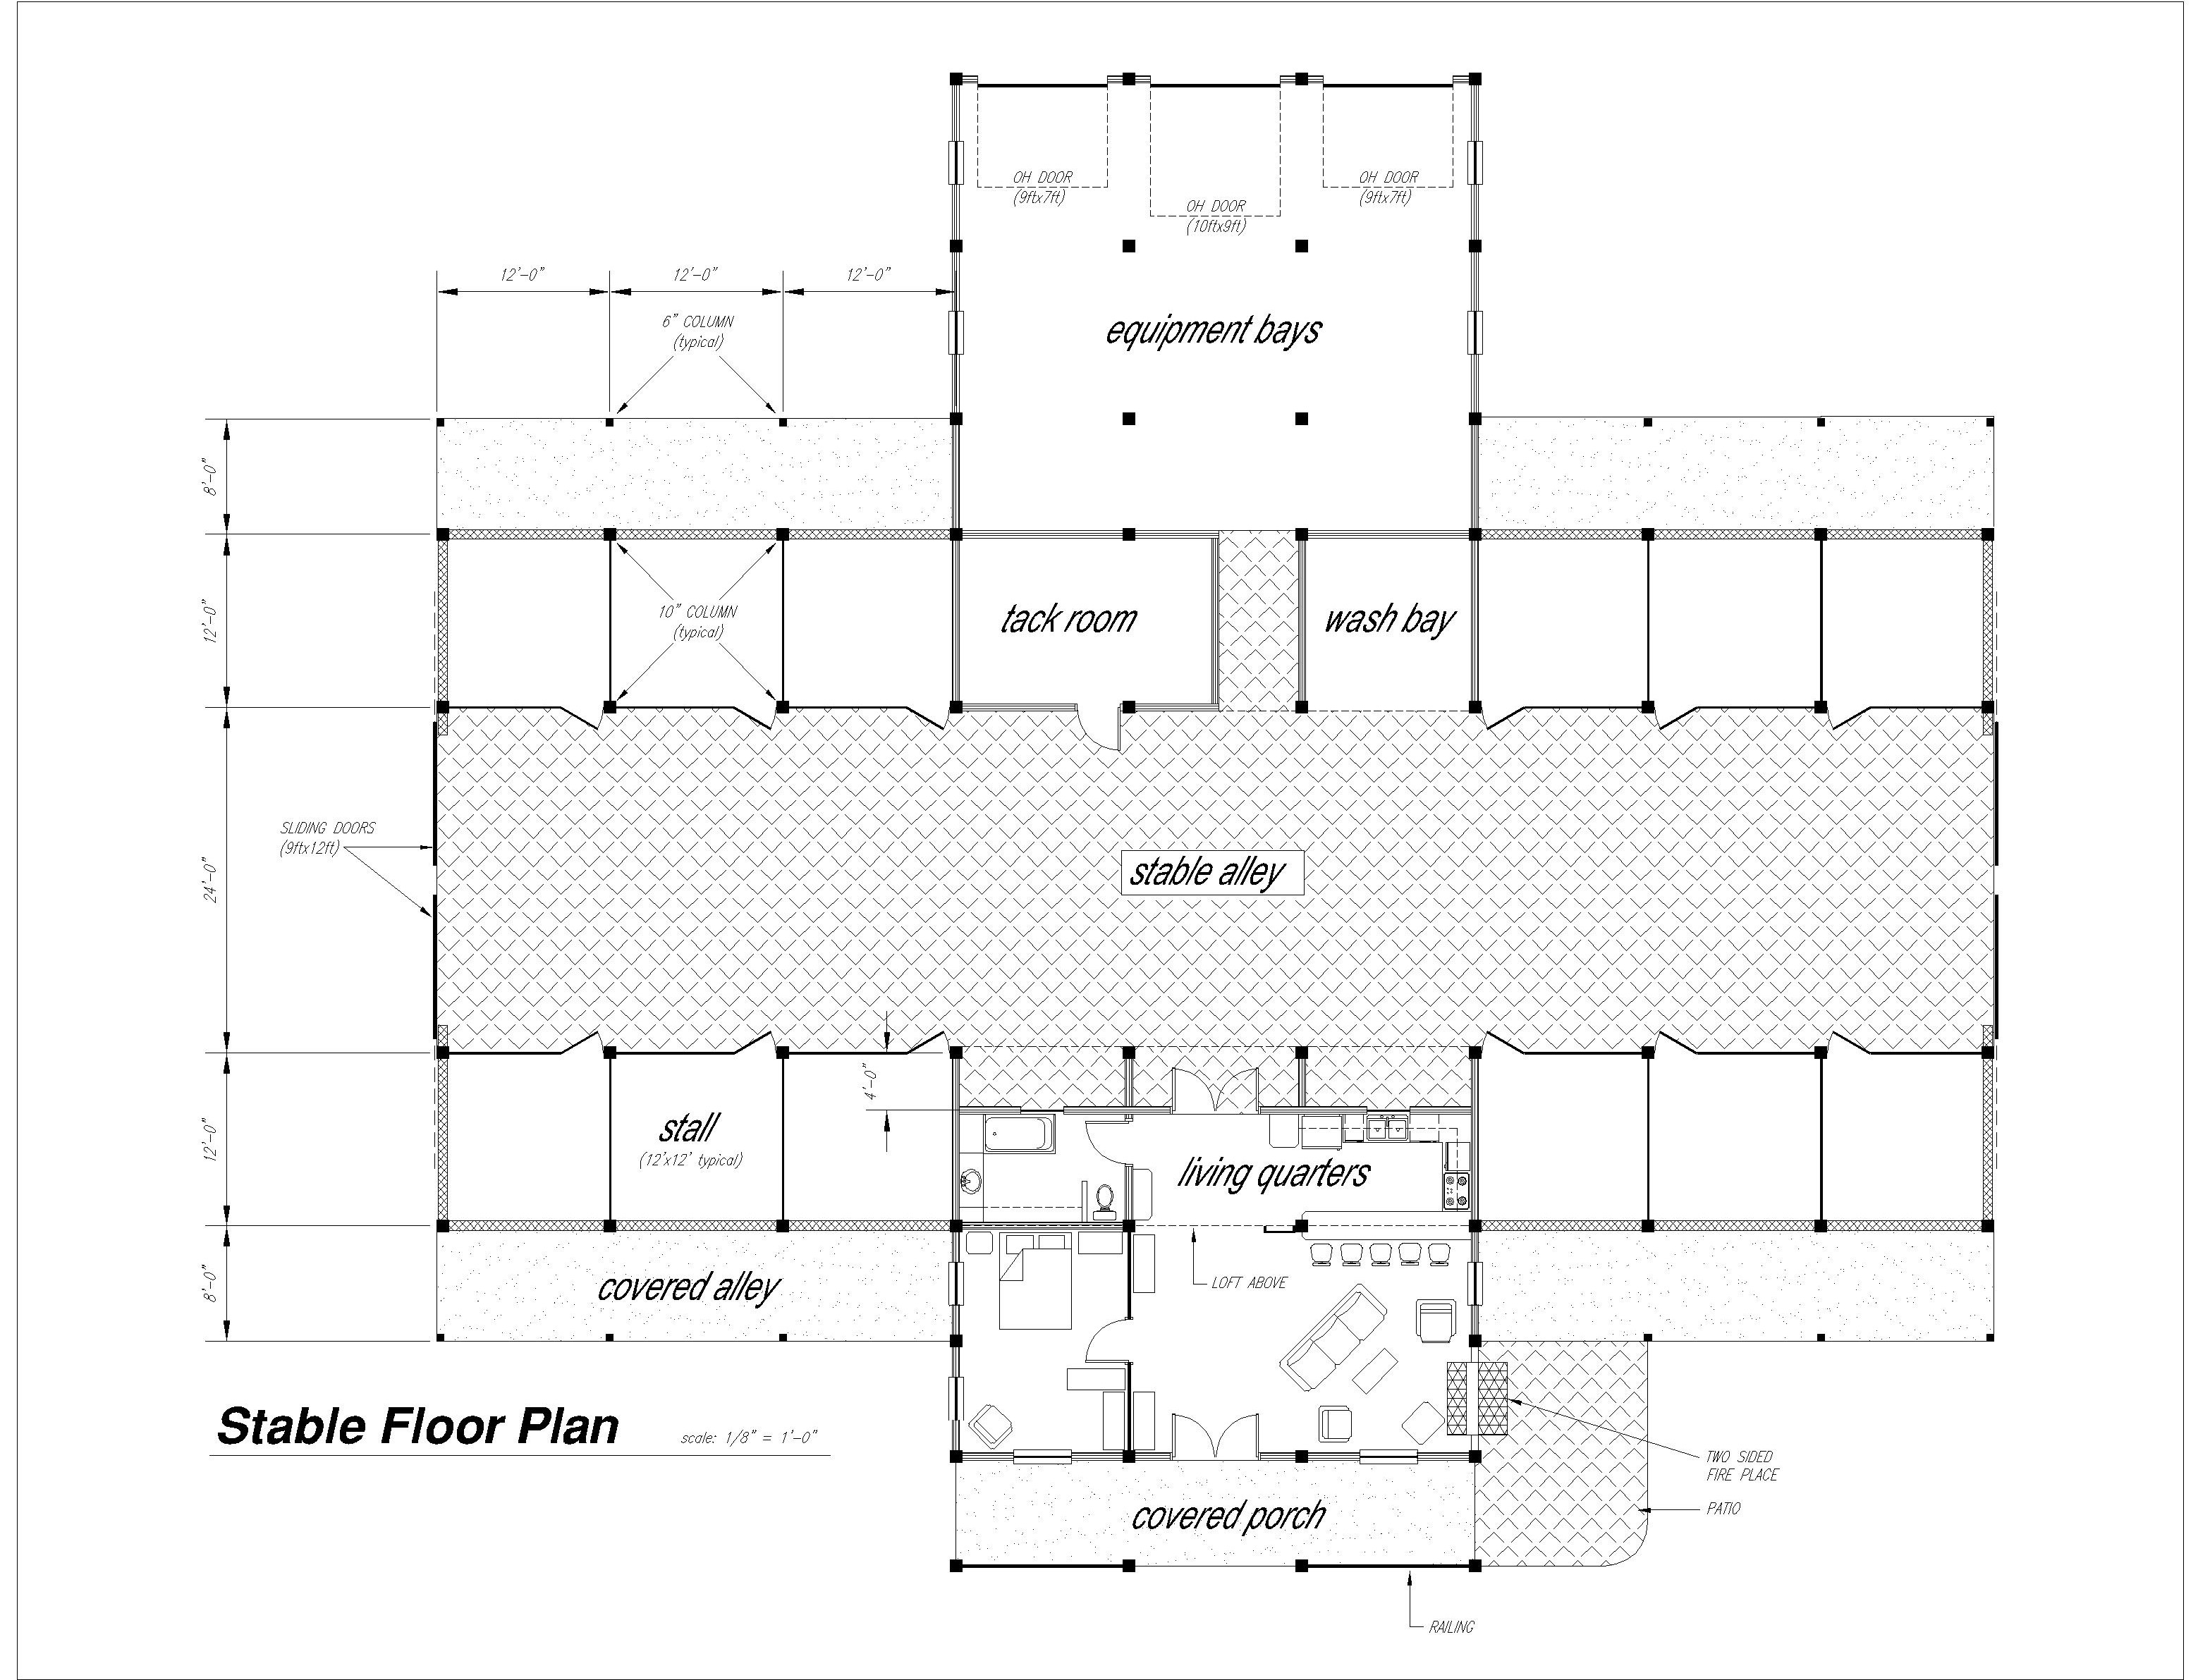 Barn Floor Plan At RiverView Stables